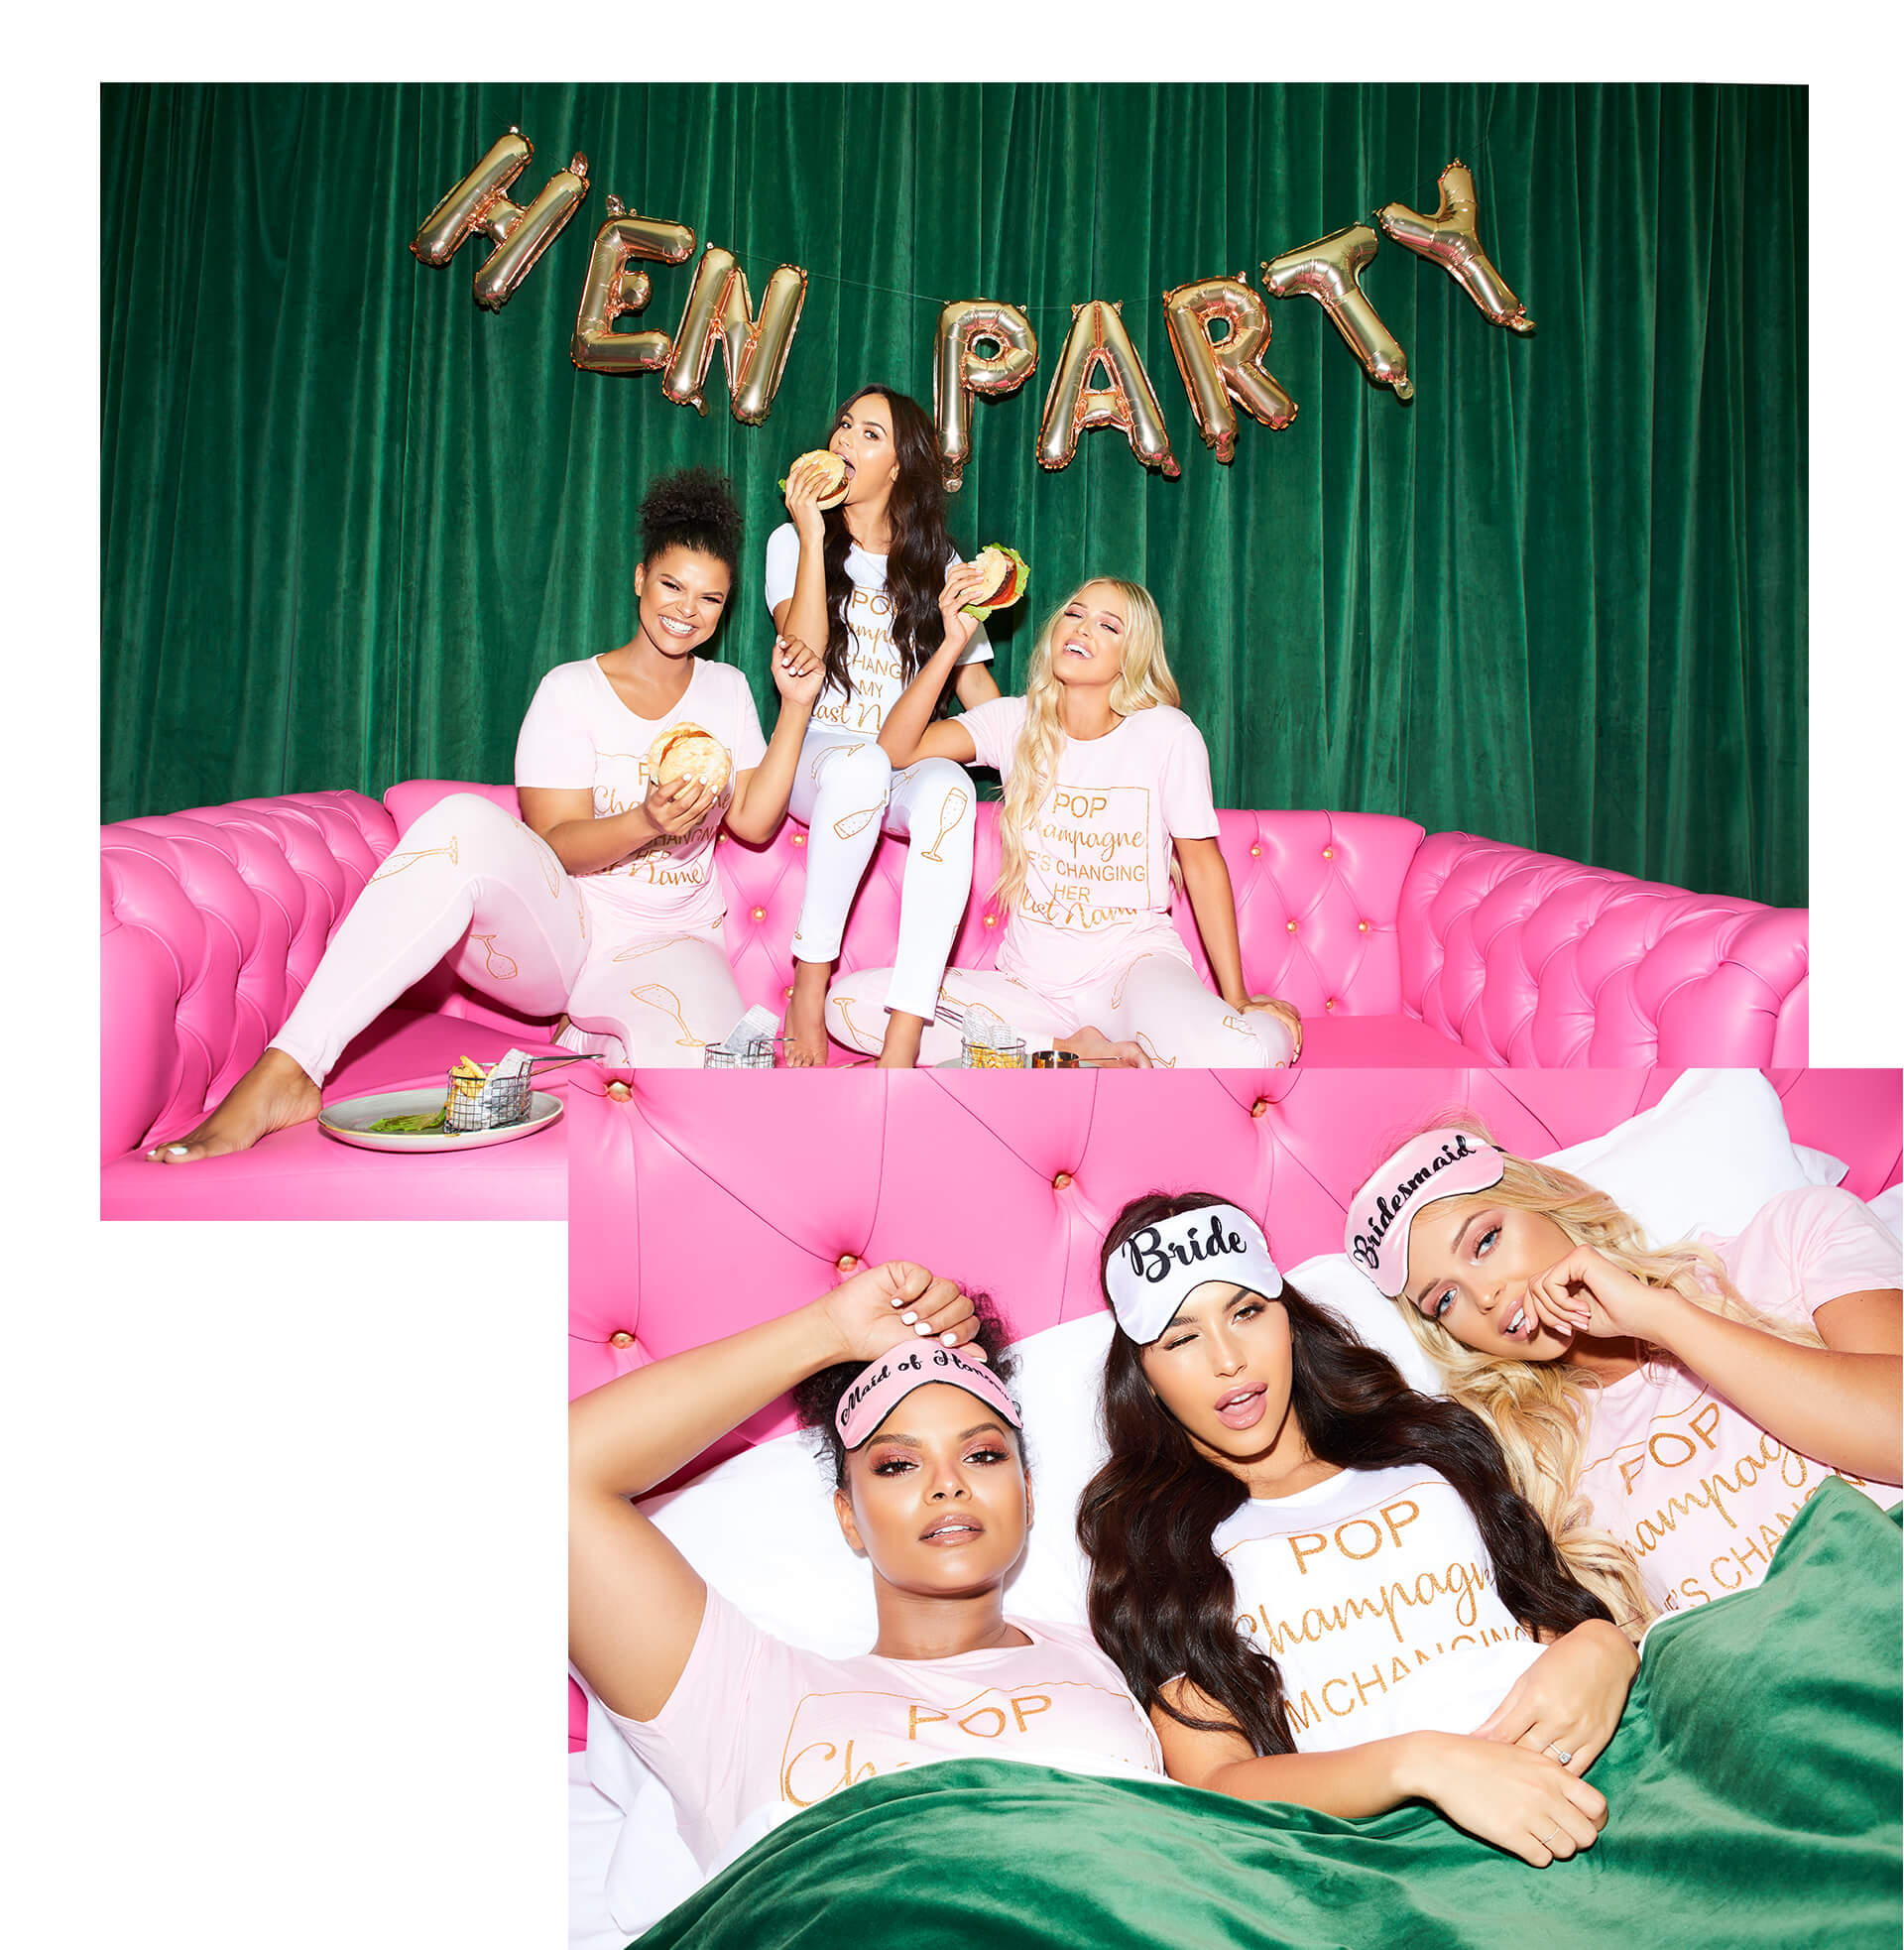 Hen Party Pop Champagne T-Shirt Lookbook Image